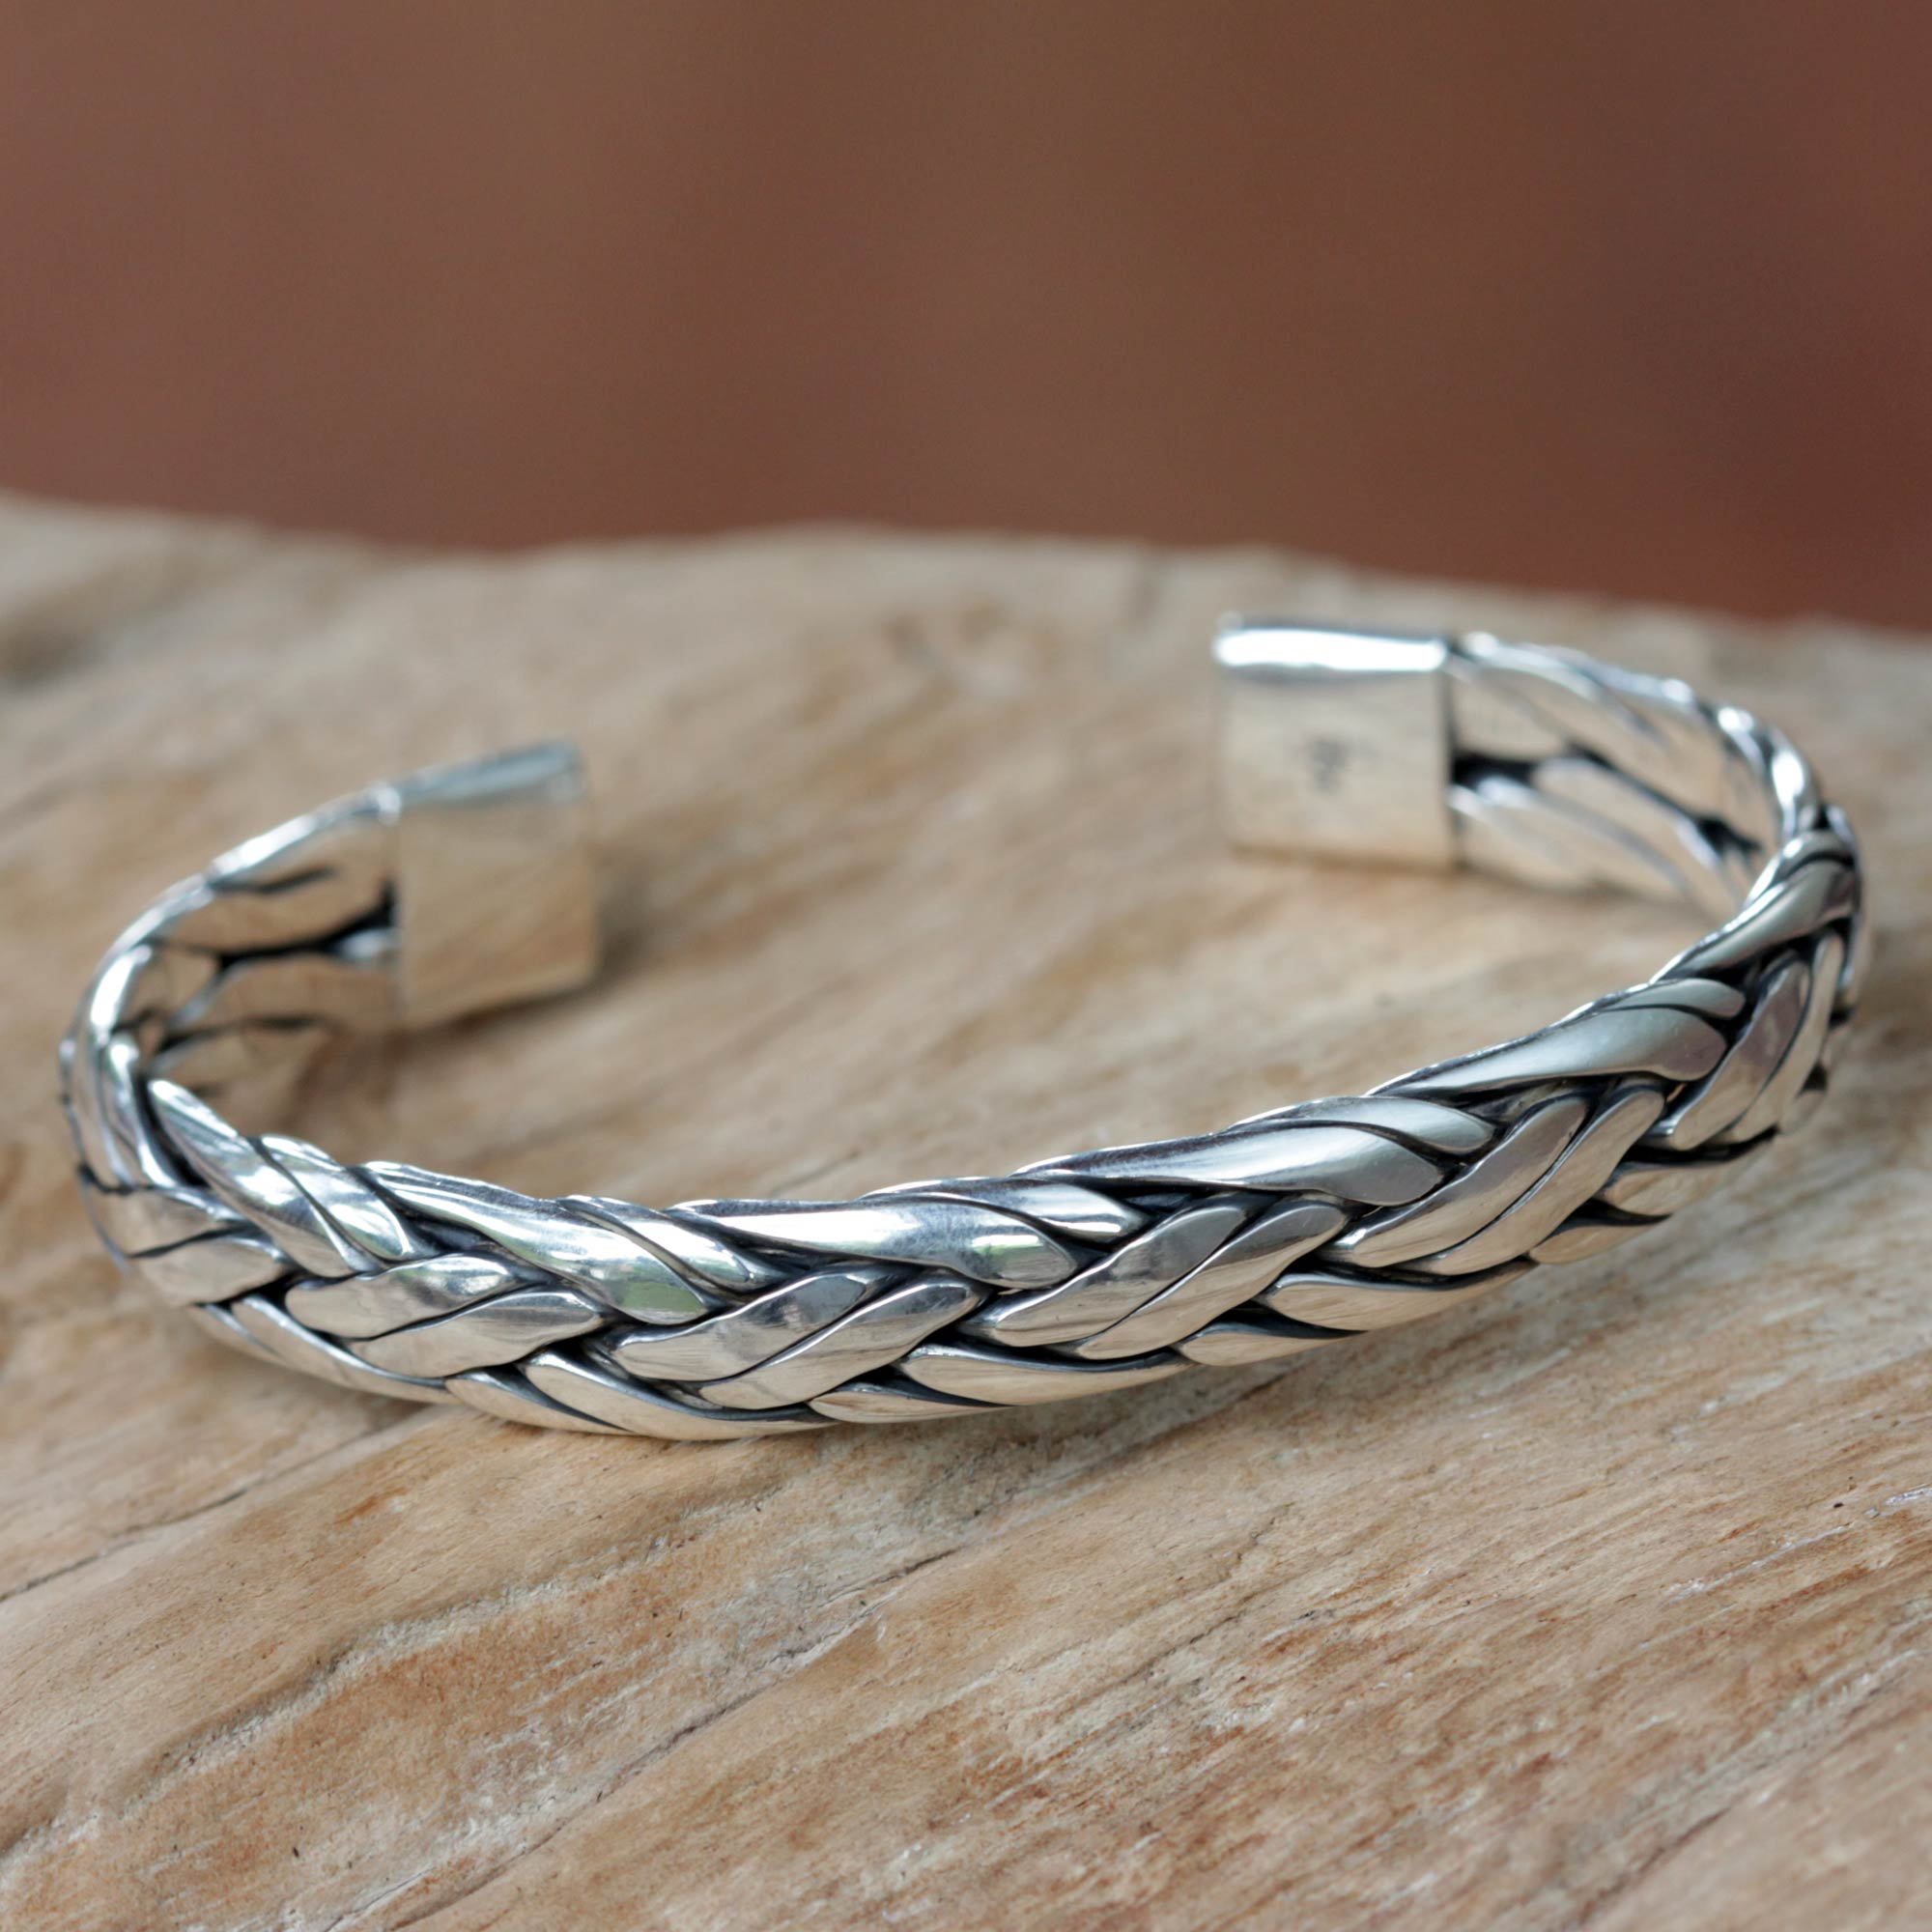 cuff bracelets jewelry novica bangles bangle singaraja from sterling weave at braided and silver gallery bracelet gold